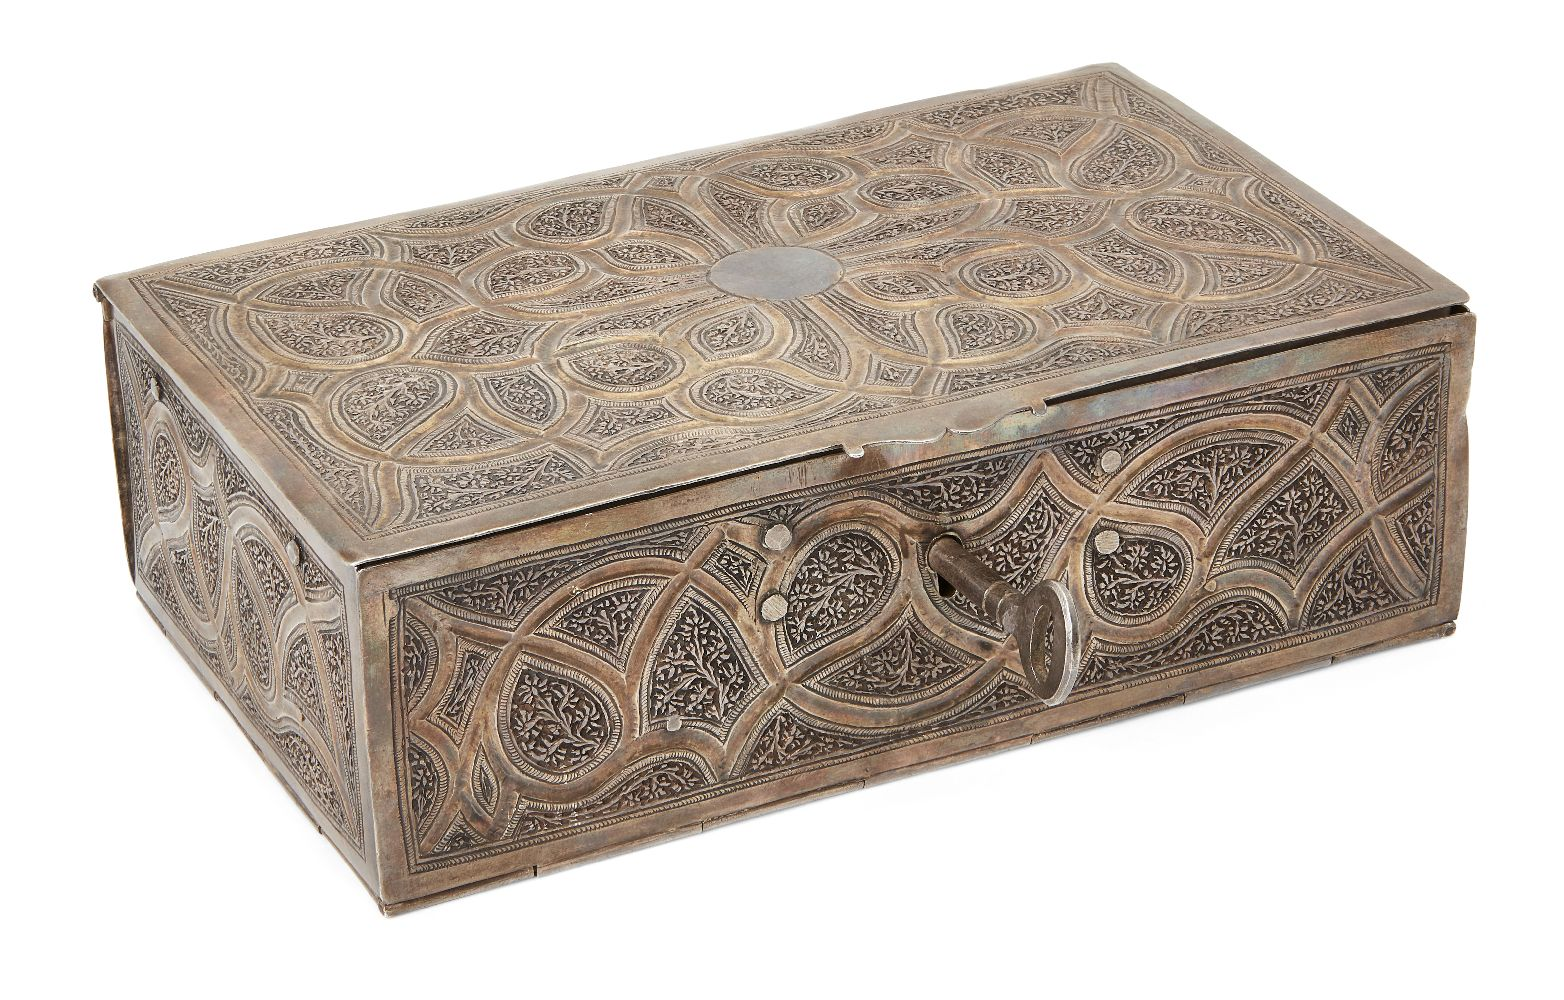 A lidded cosmetics box in gilded silver, Kashmir, North India, circa 1900, of rectangular form,